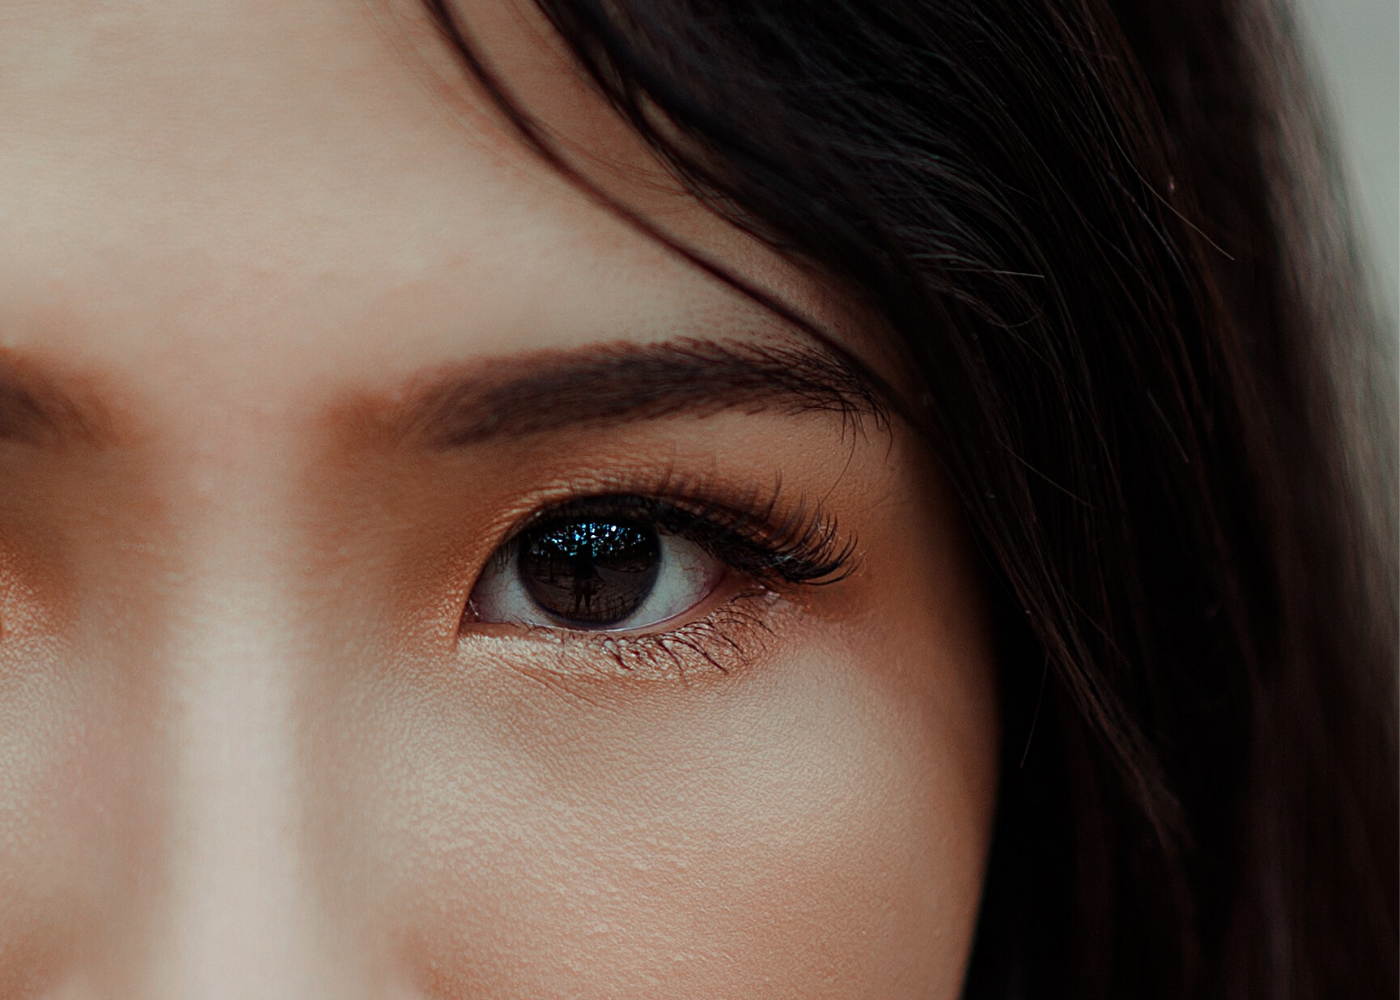 It's makeover time! Prettify your look with Dreamlash's natural Korean eyelash extensions